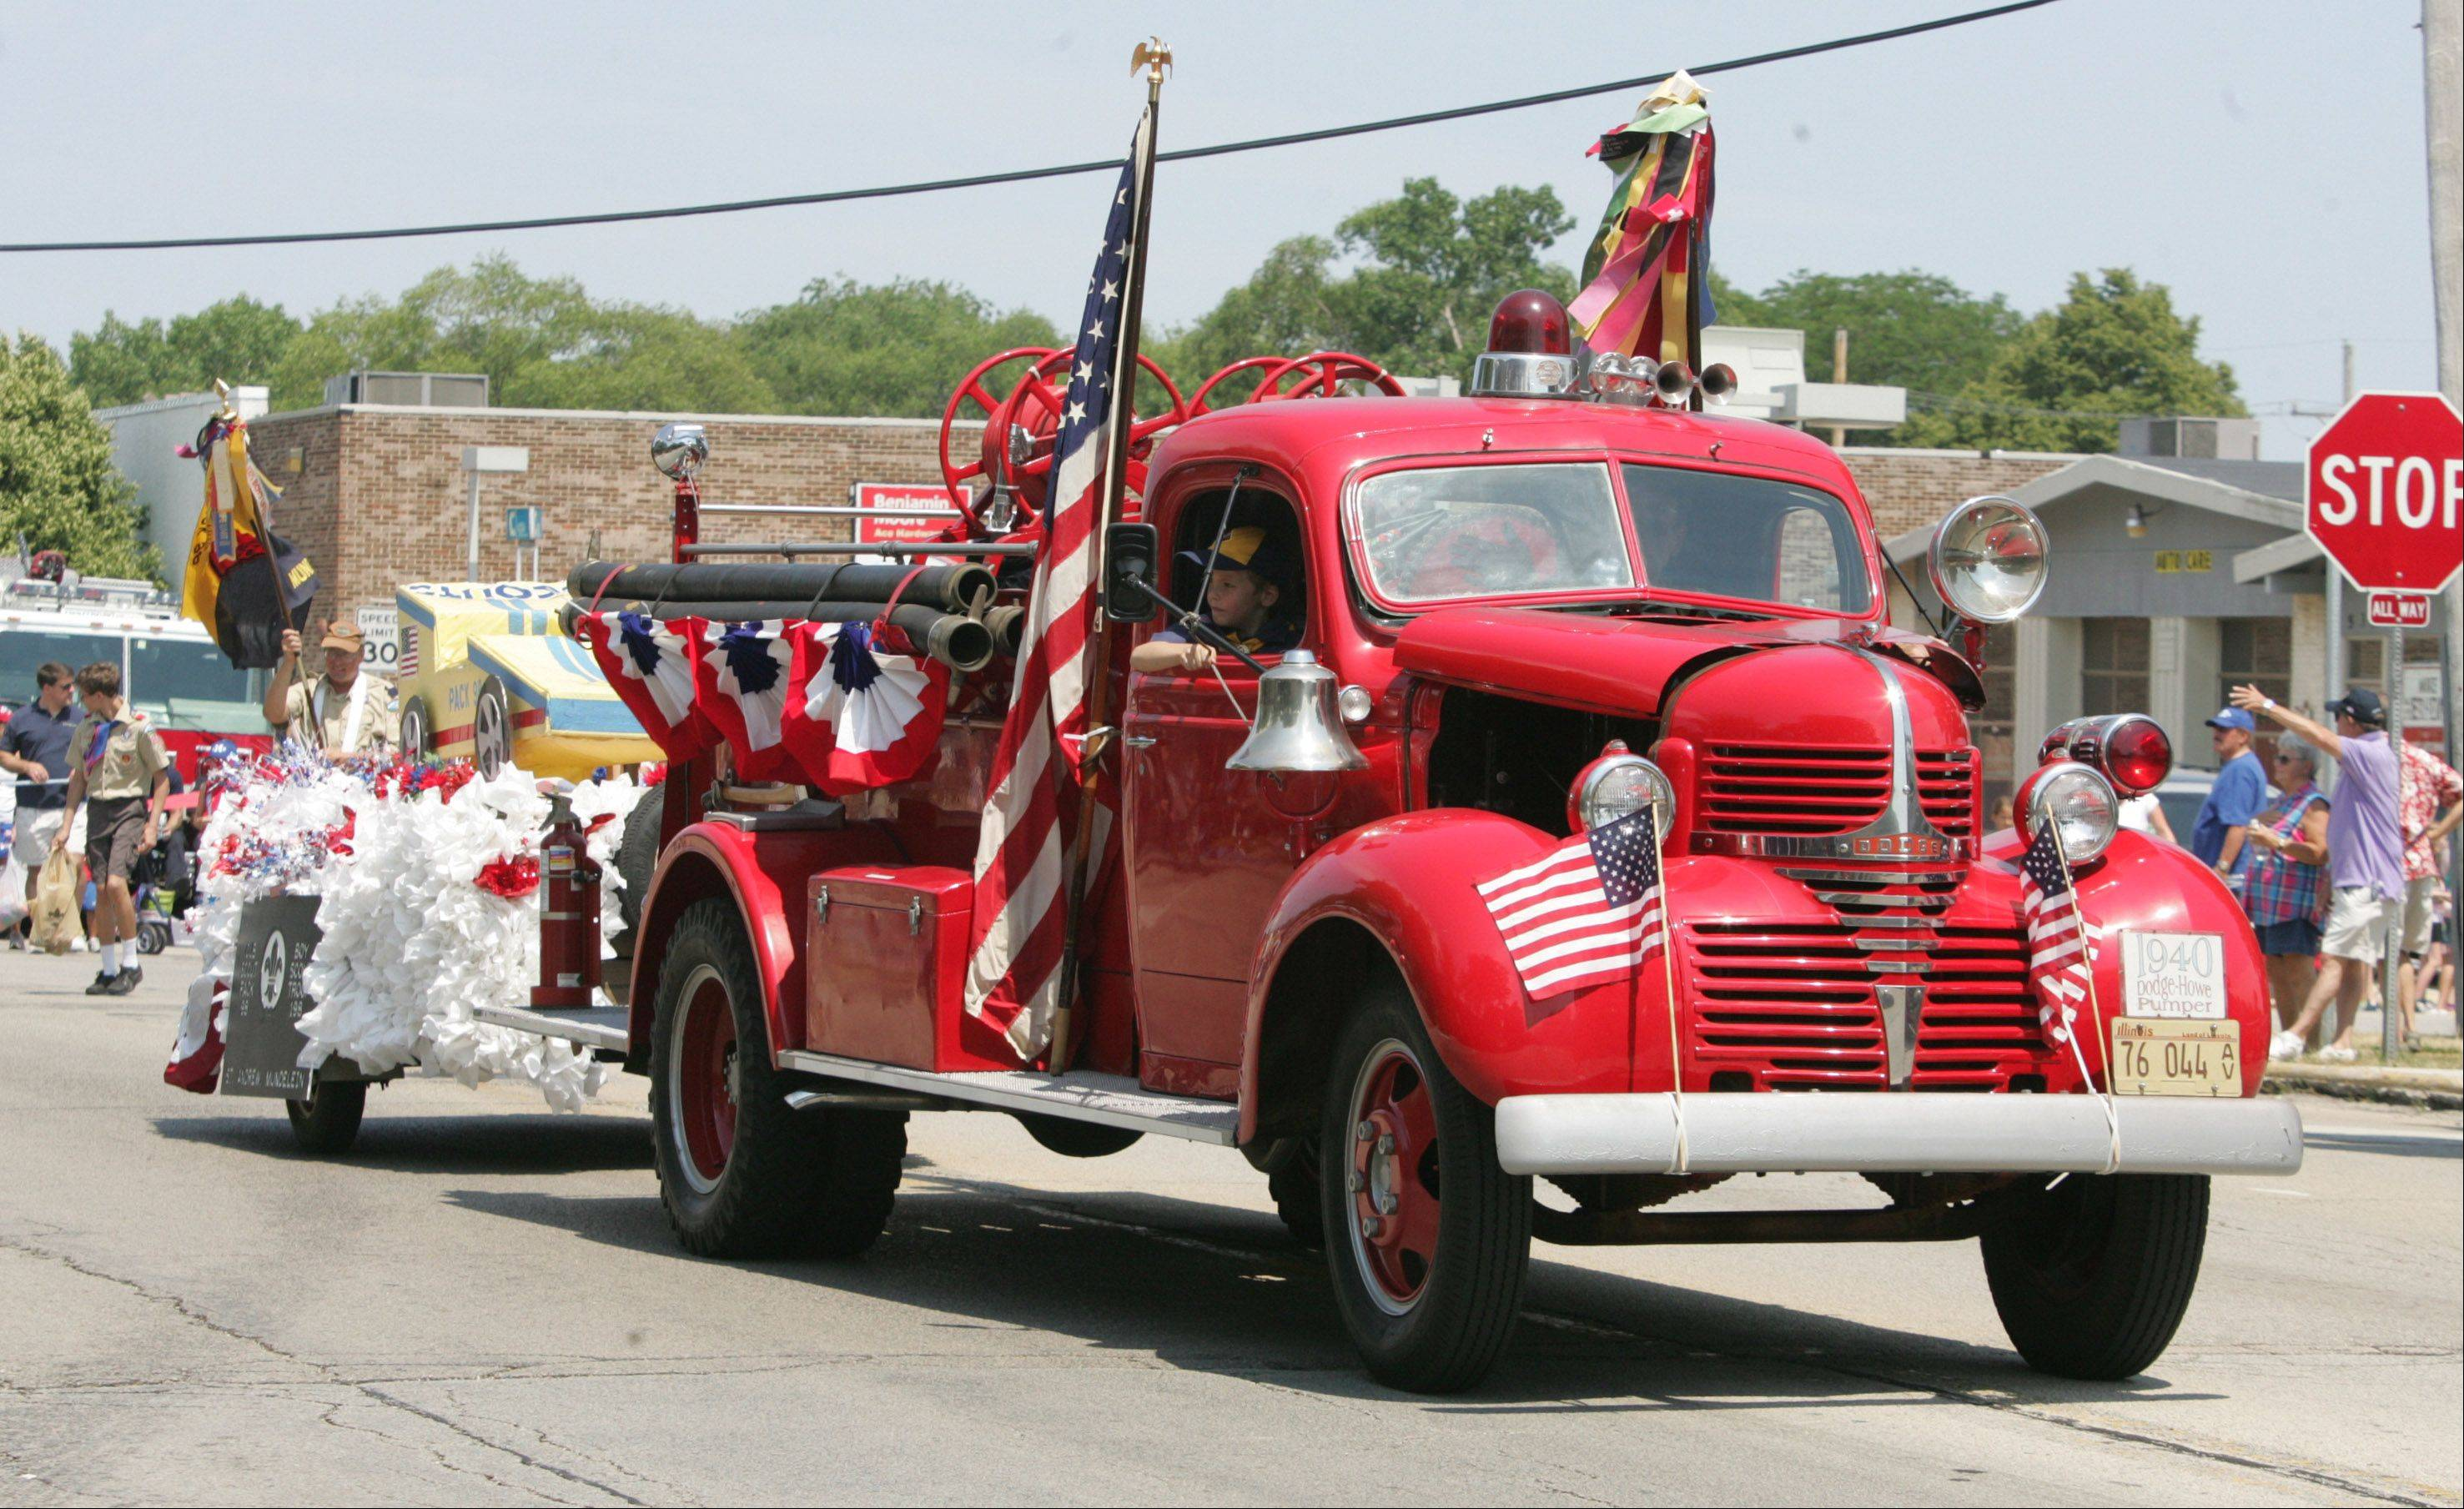 A 1940 Dodge-Howe Pumper fire truck pulls the float for Cub Scouts Pack 98 and Boy Scouts Troop 198 in Mundelein during the Mundelein Community Days Parade Sunday as it makes its way along Hawley Street.